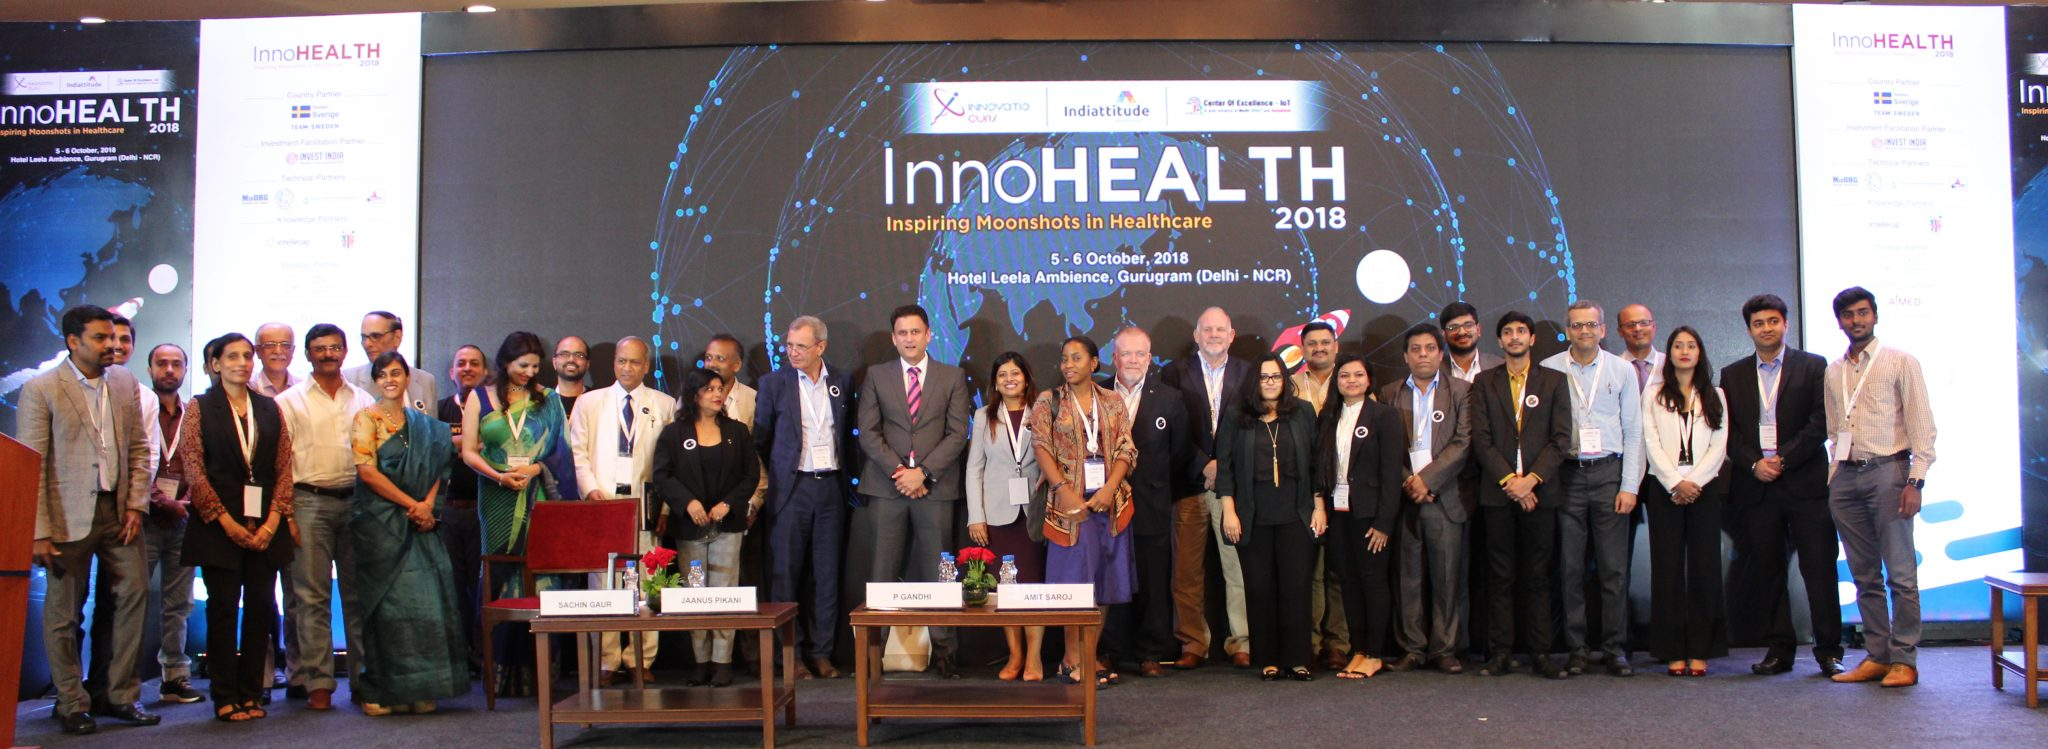 InnoHEALTH 2018 conference group photo